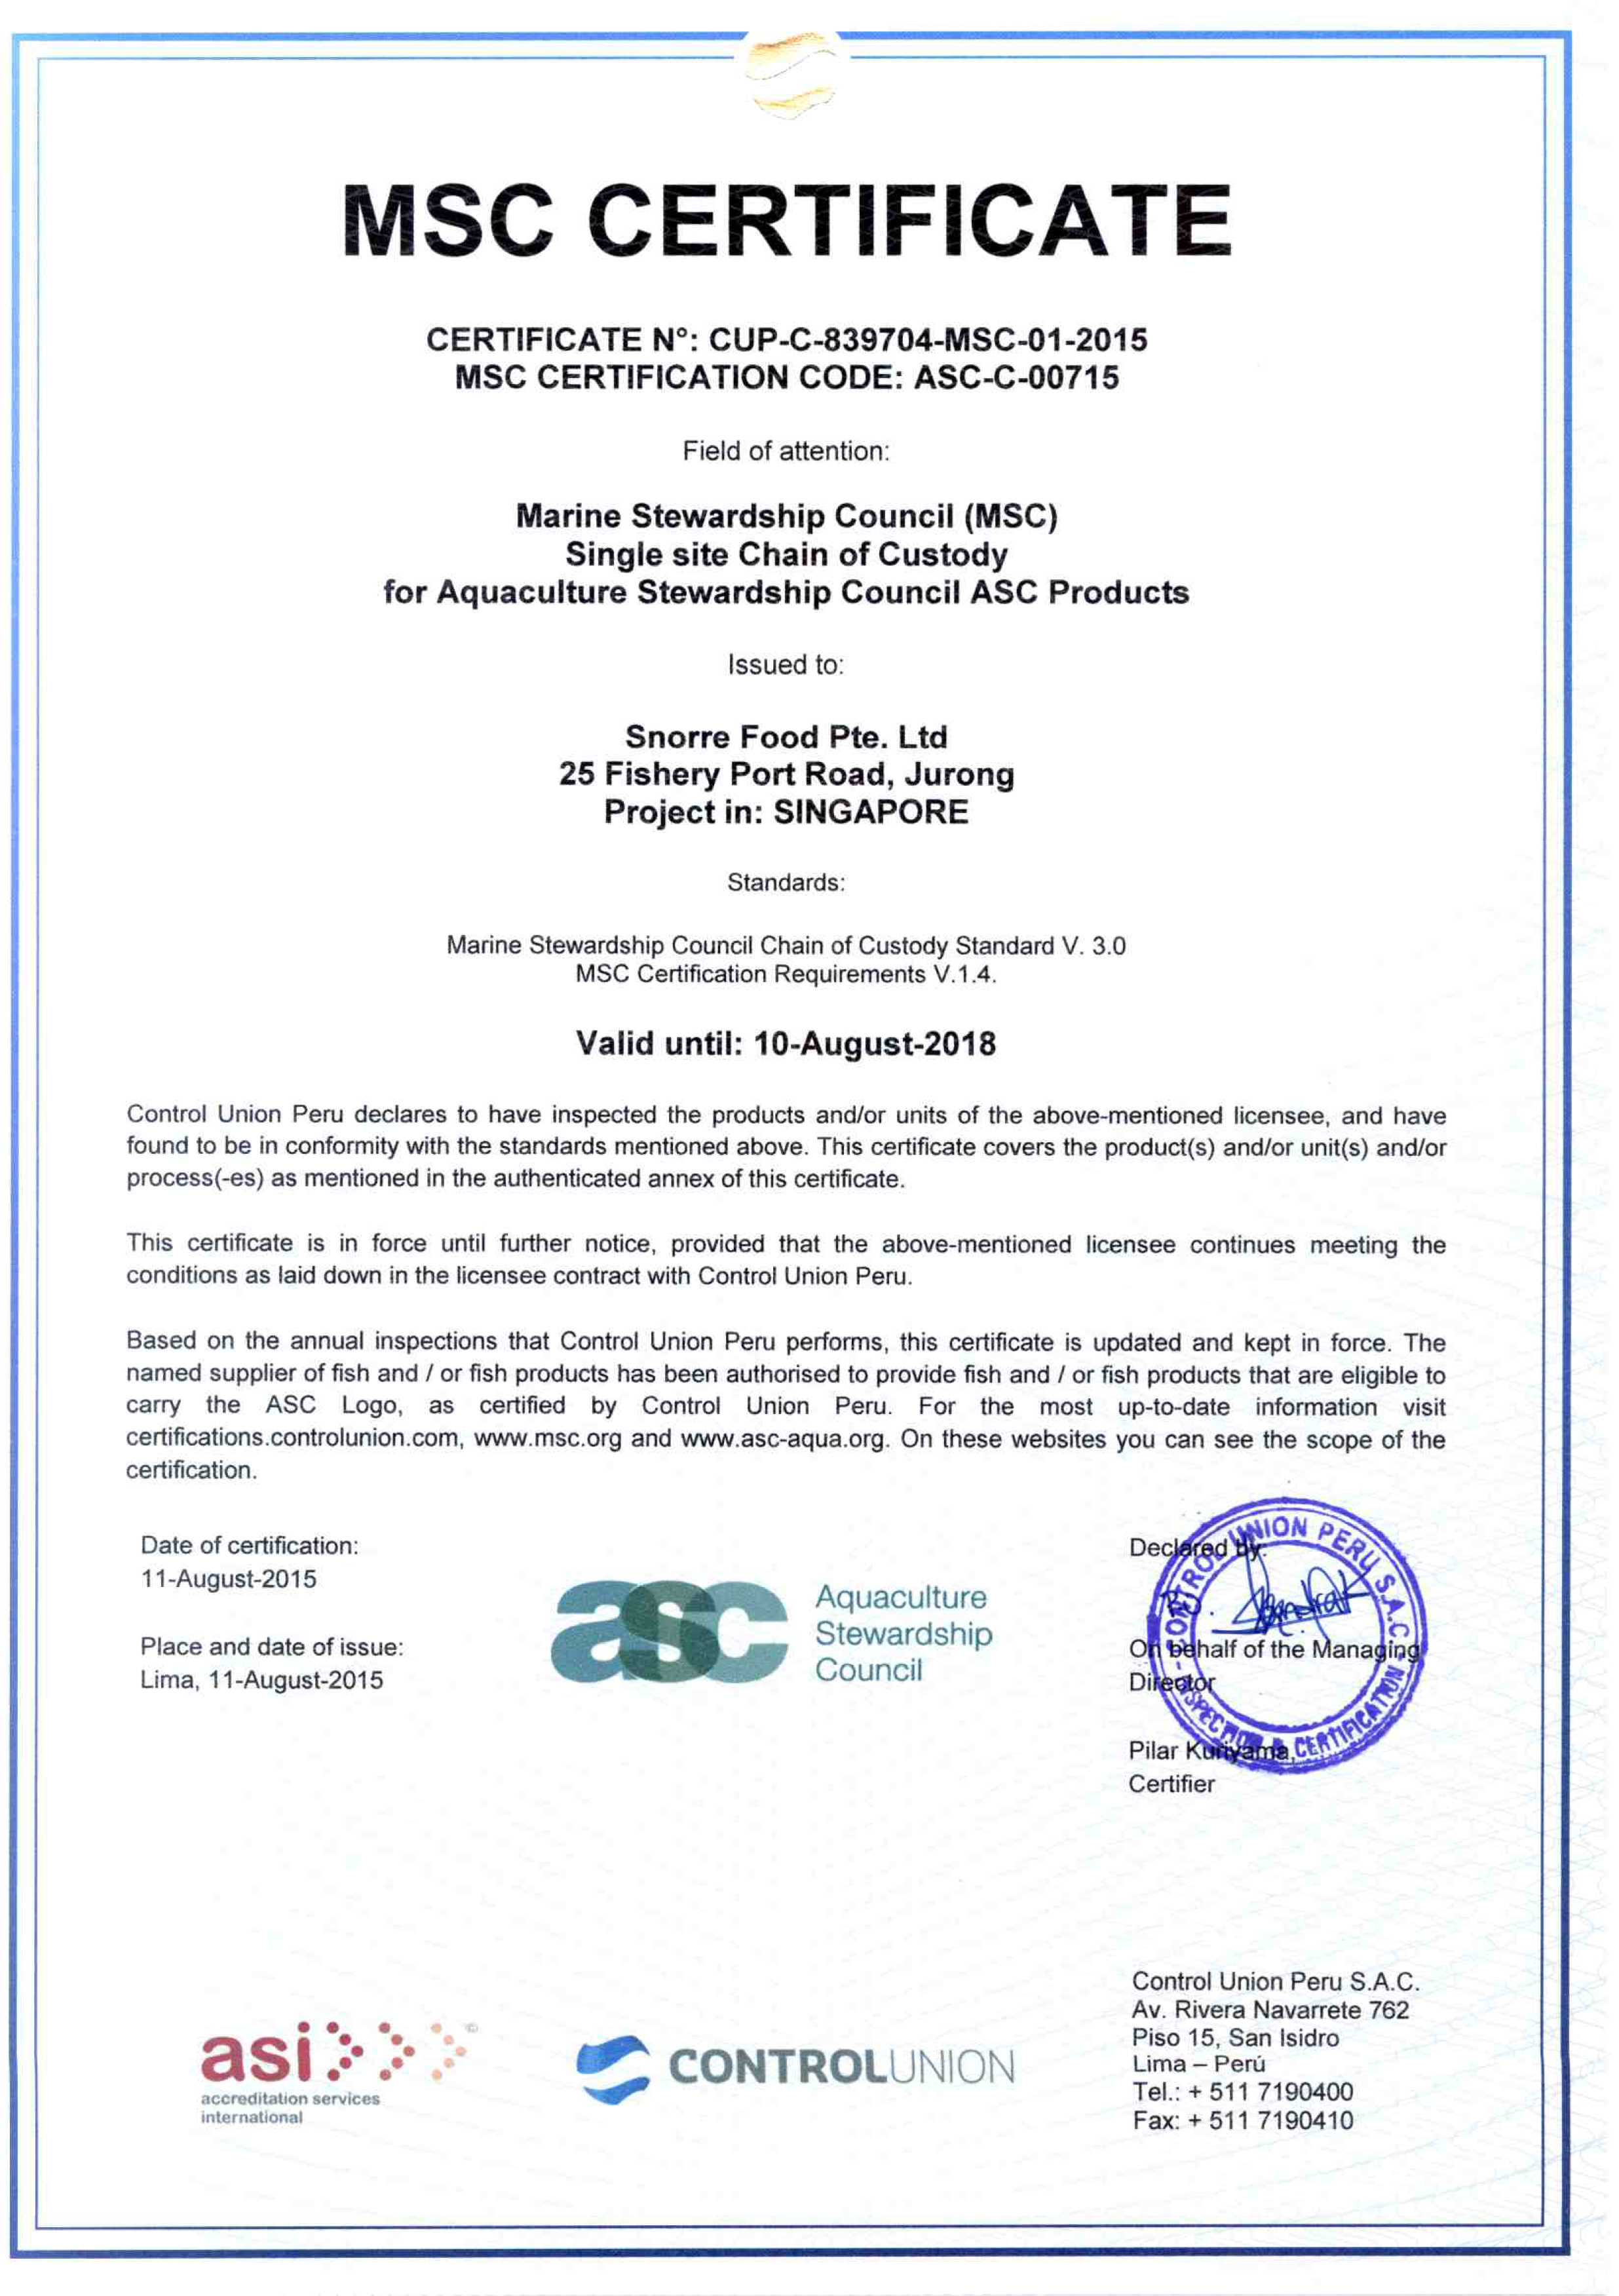 Our certification snorre food pte ltd msccertificate11082015 1 xflitez Image collections